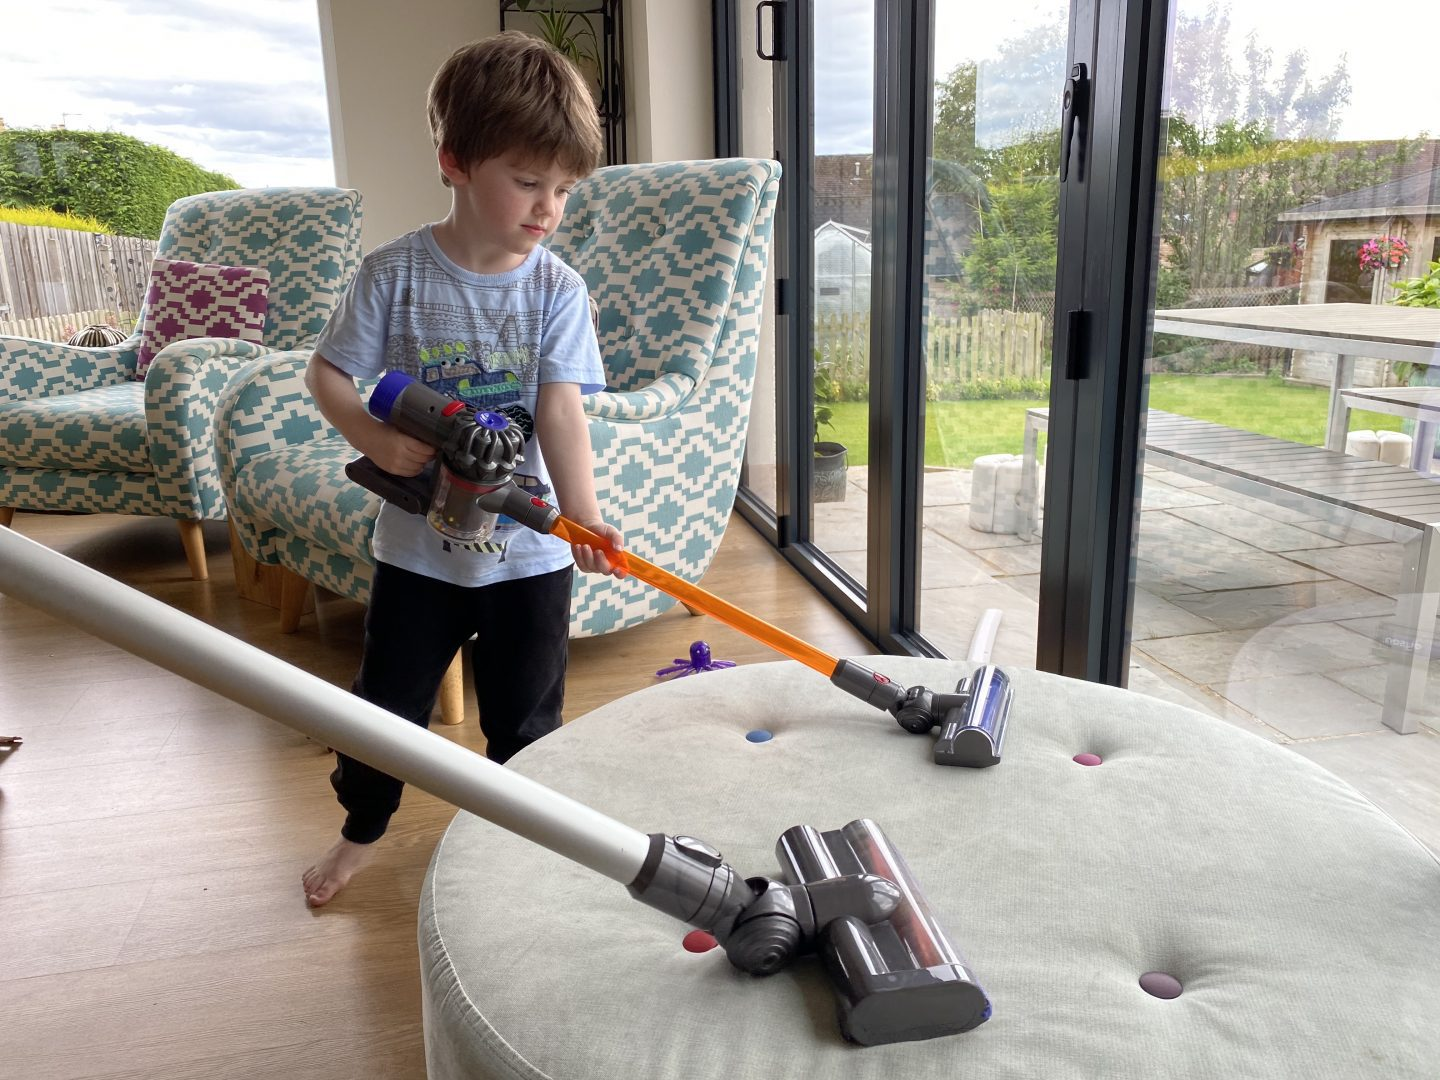 A boy using a toy Dyson cordless vacuum cleaner alongside a real one